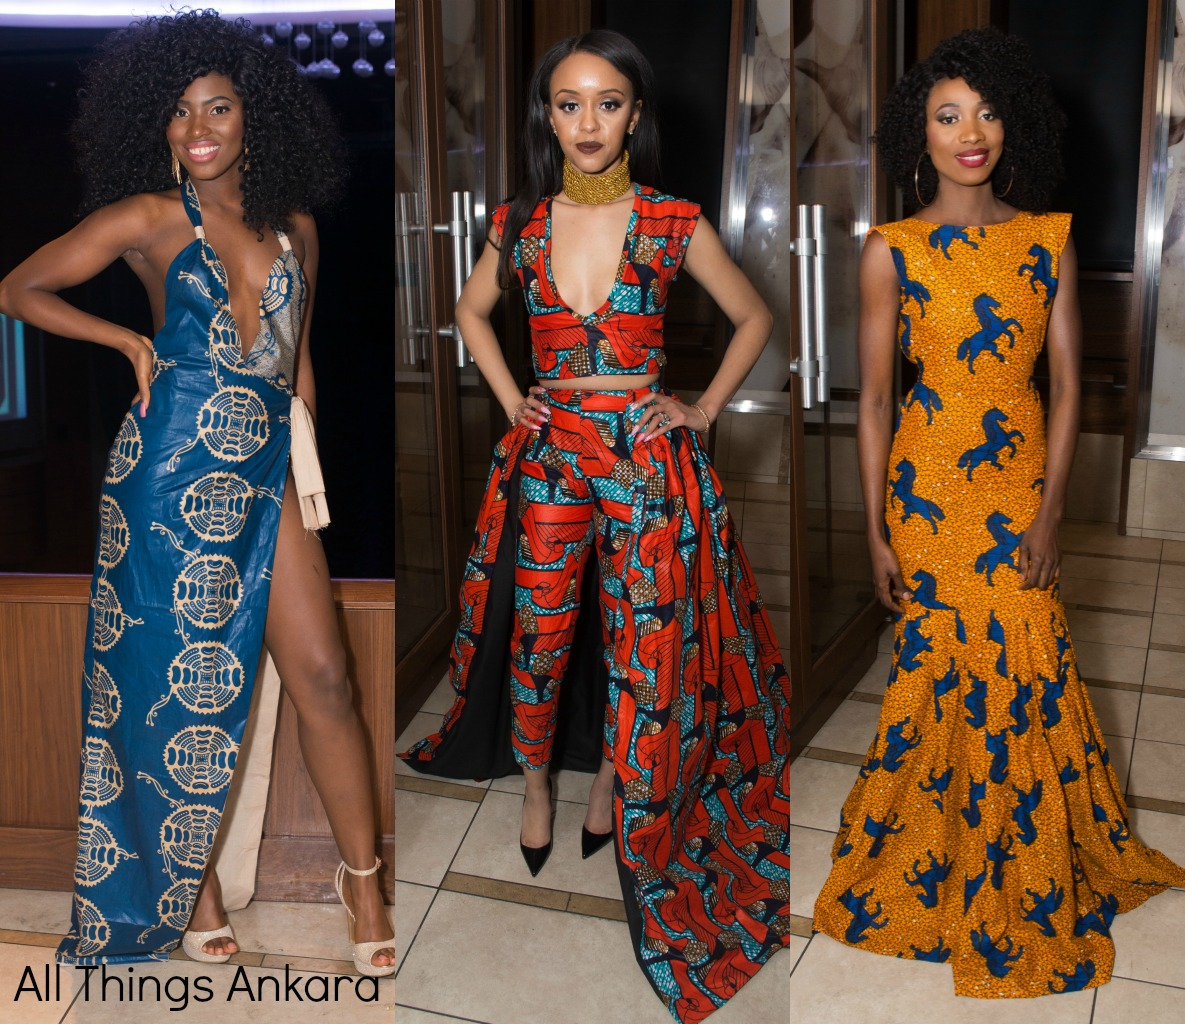 ce8f1414c84 All Things Ankara s Best Dressed Women at the Exquisite Ghana Ball 2015 –  View the post here